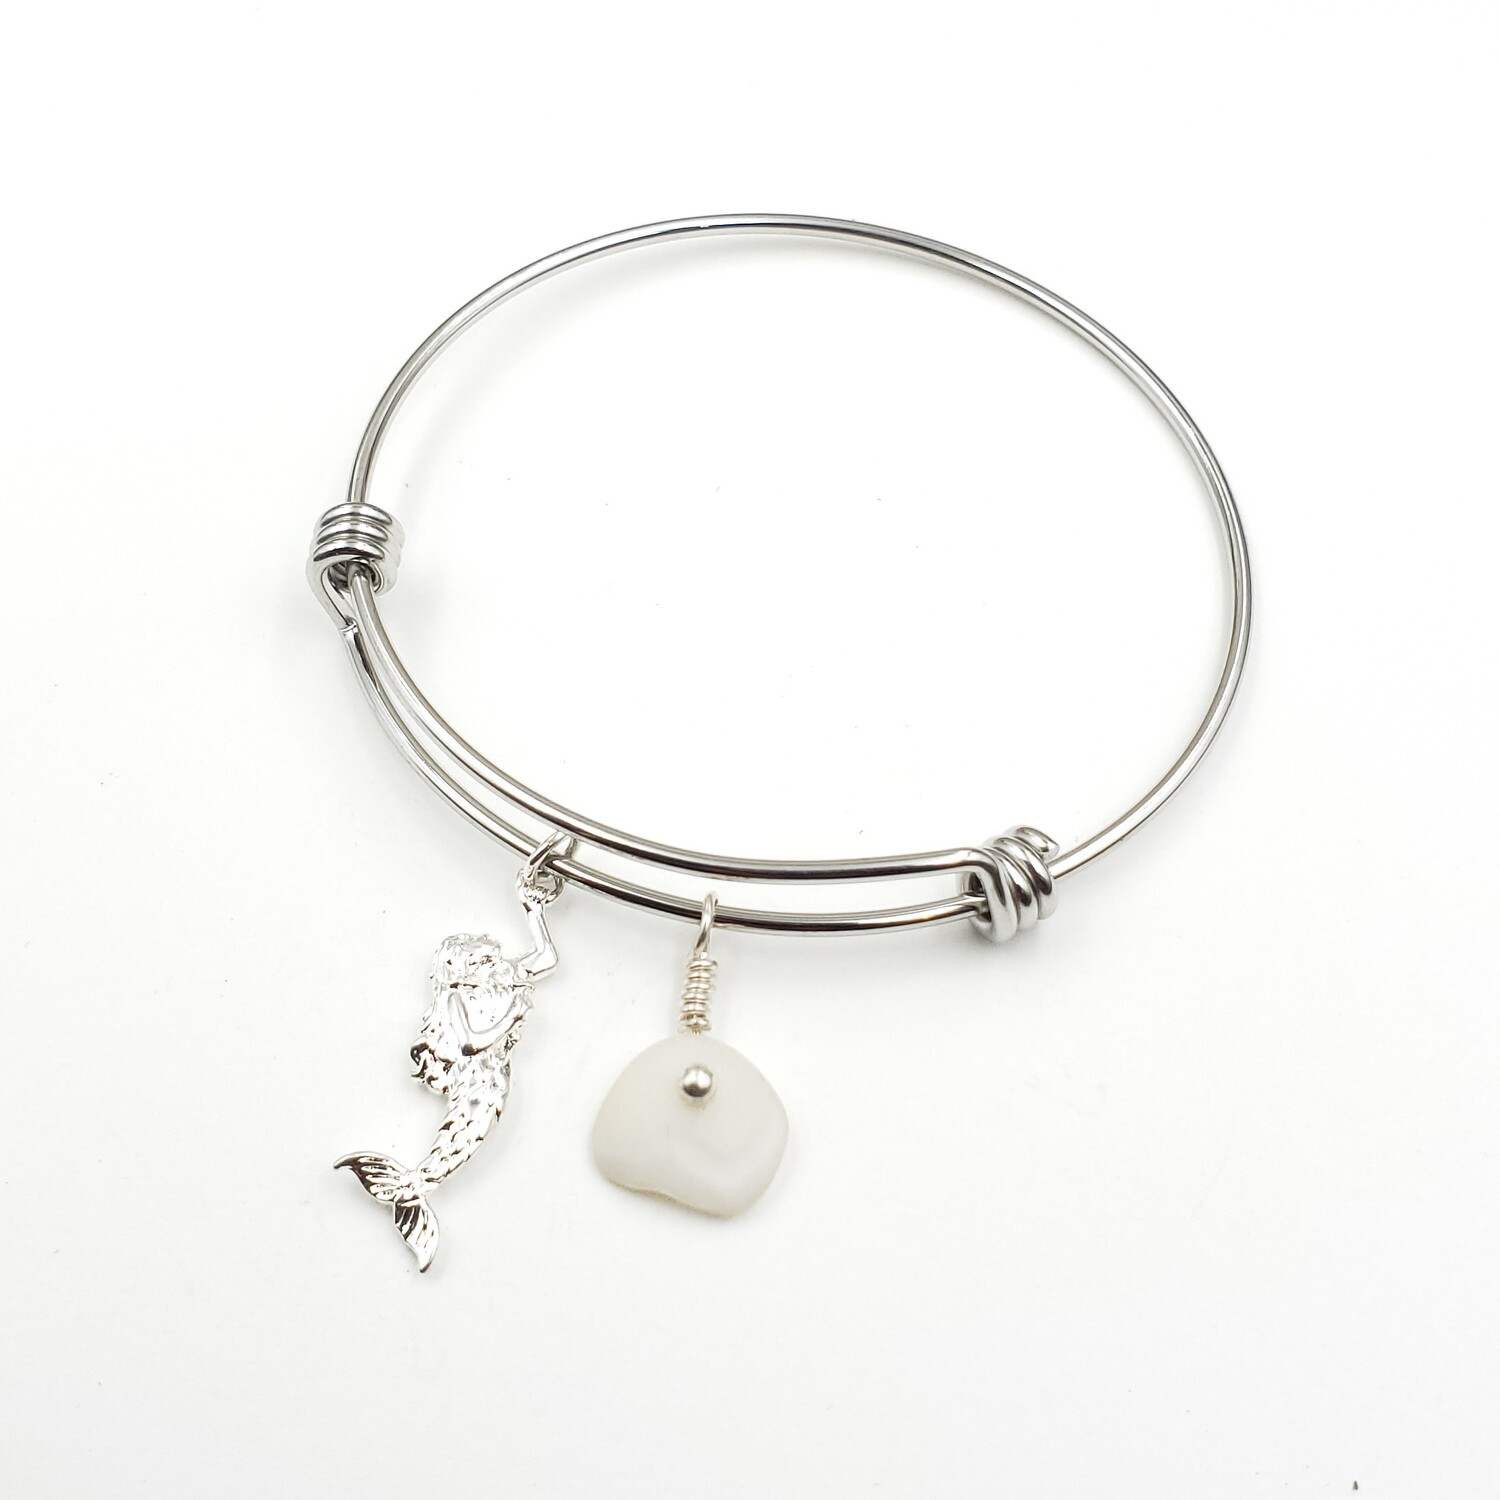 Bangle Bracelet with Mermaid Charm and Lake Erie Lucky Stone